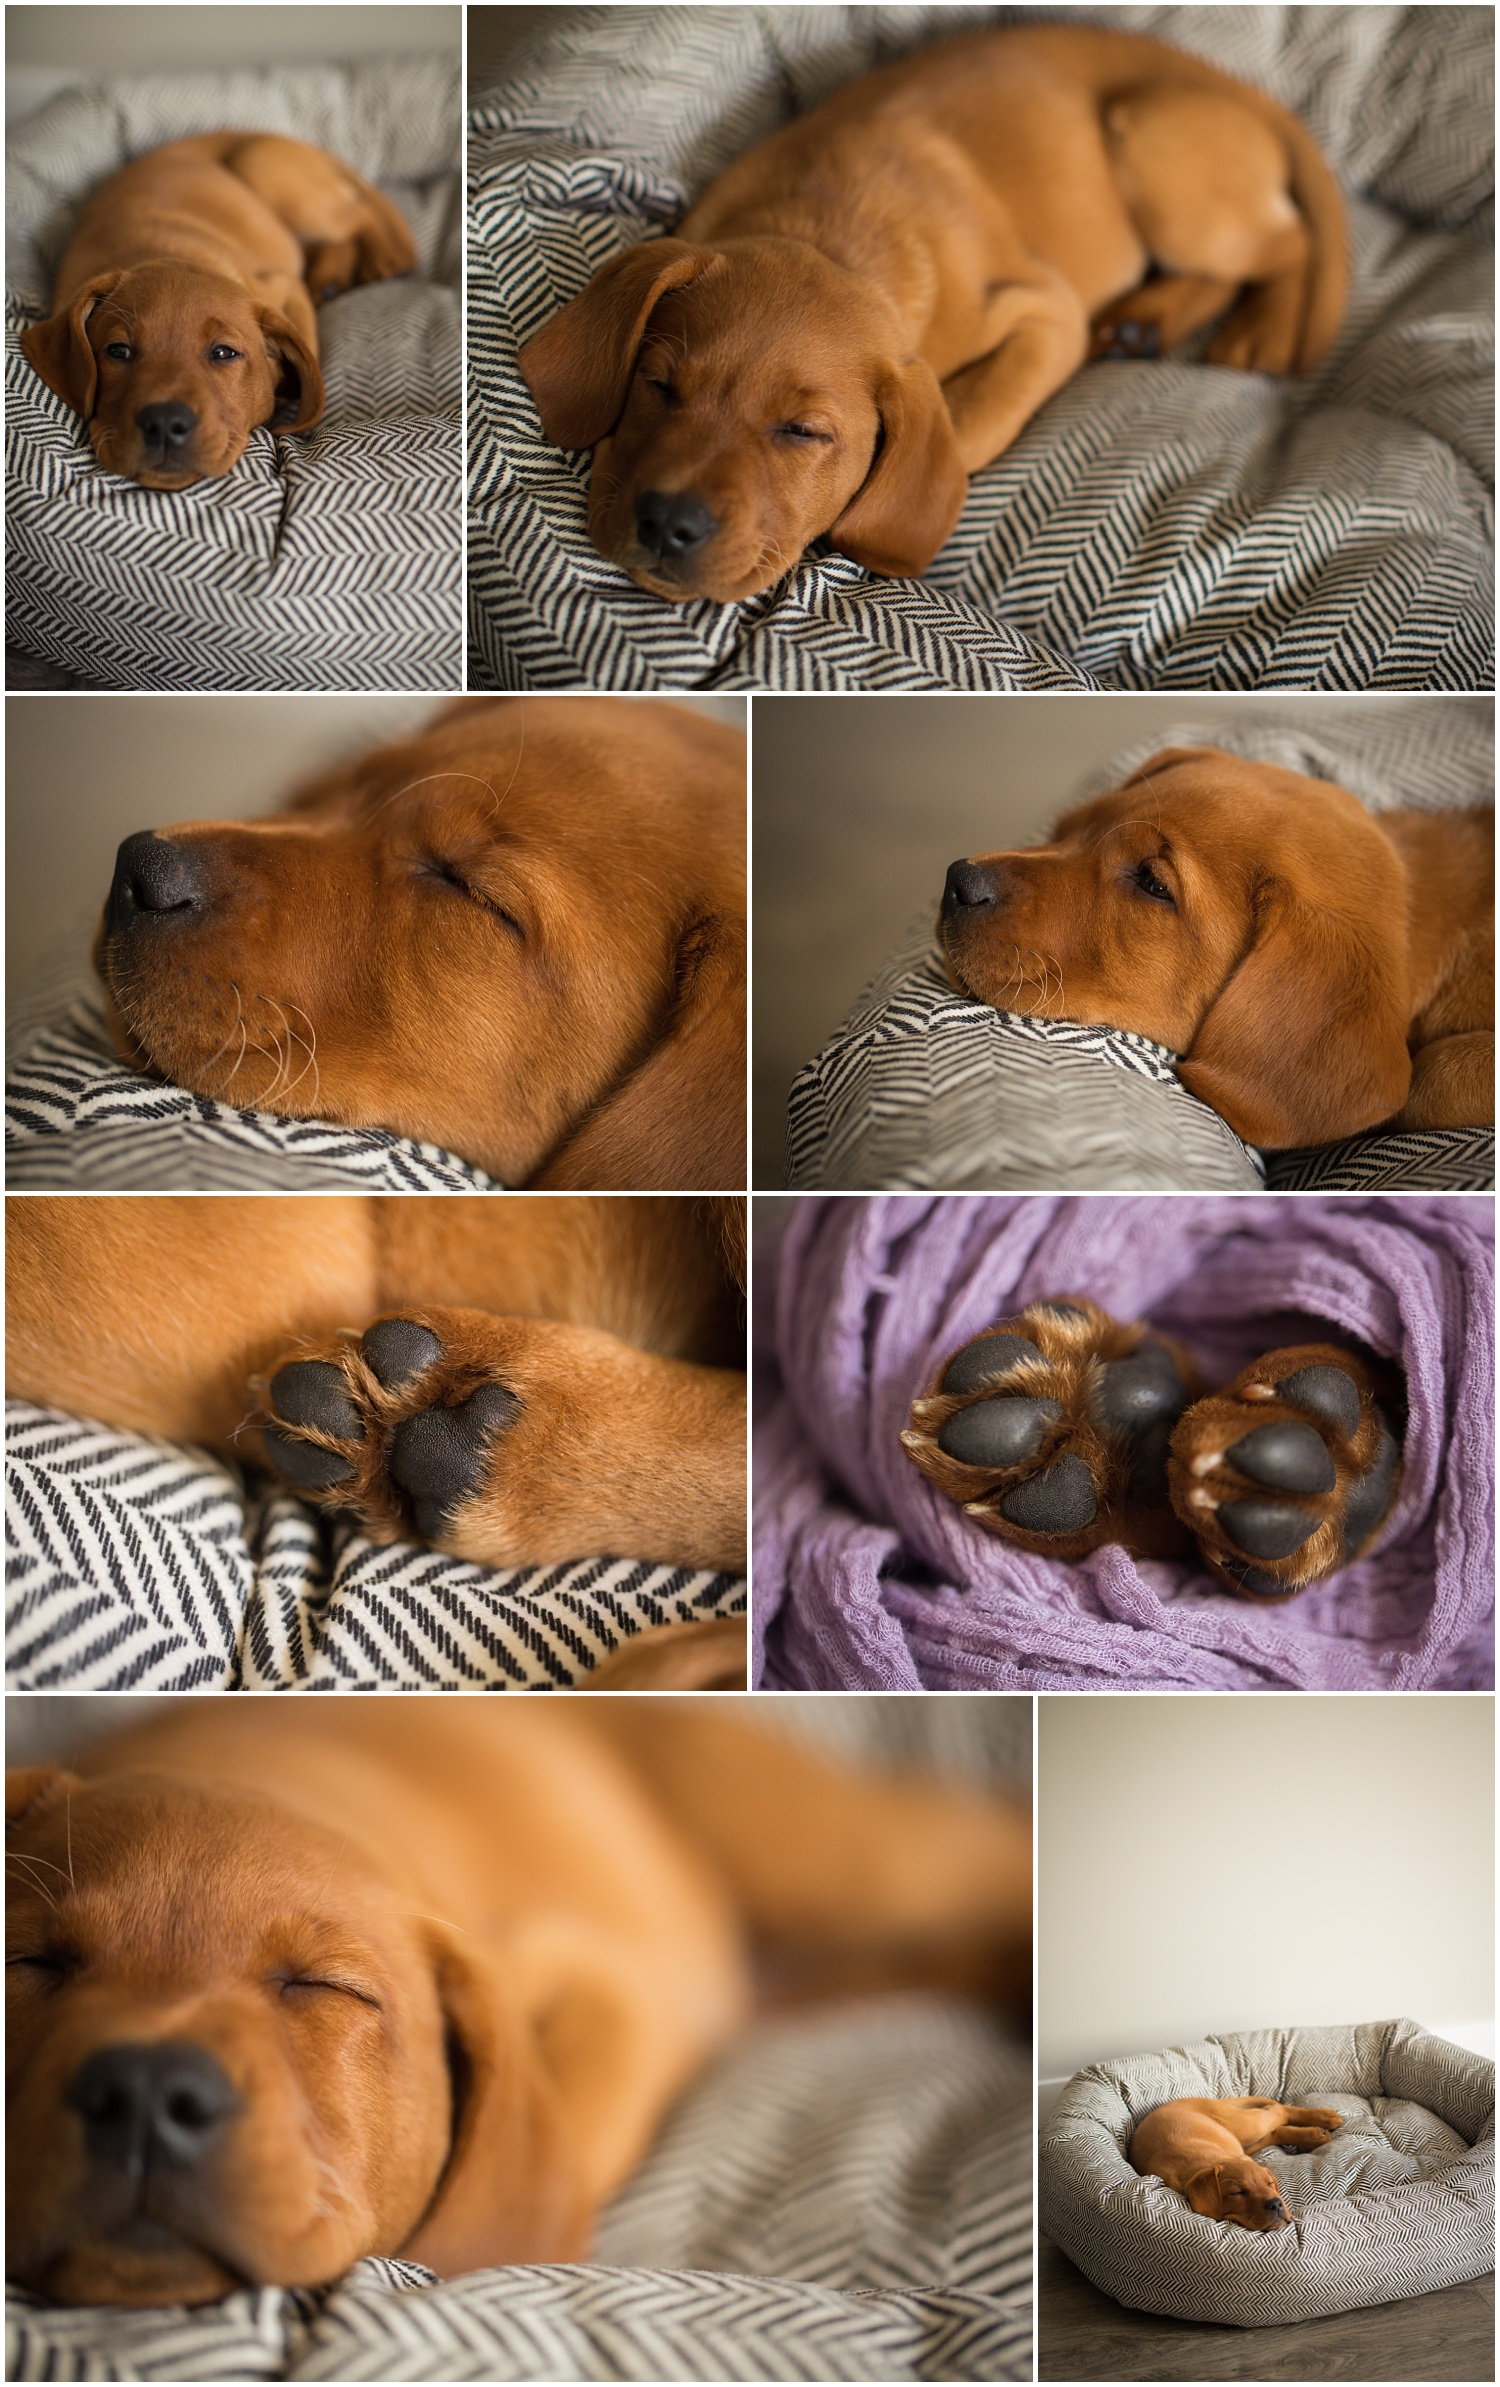 Amazing Day Photography - Puppy Newborn Session - Lifestyle Newborn Session - Dog Photographer (10).jpg